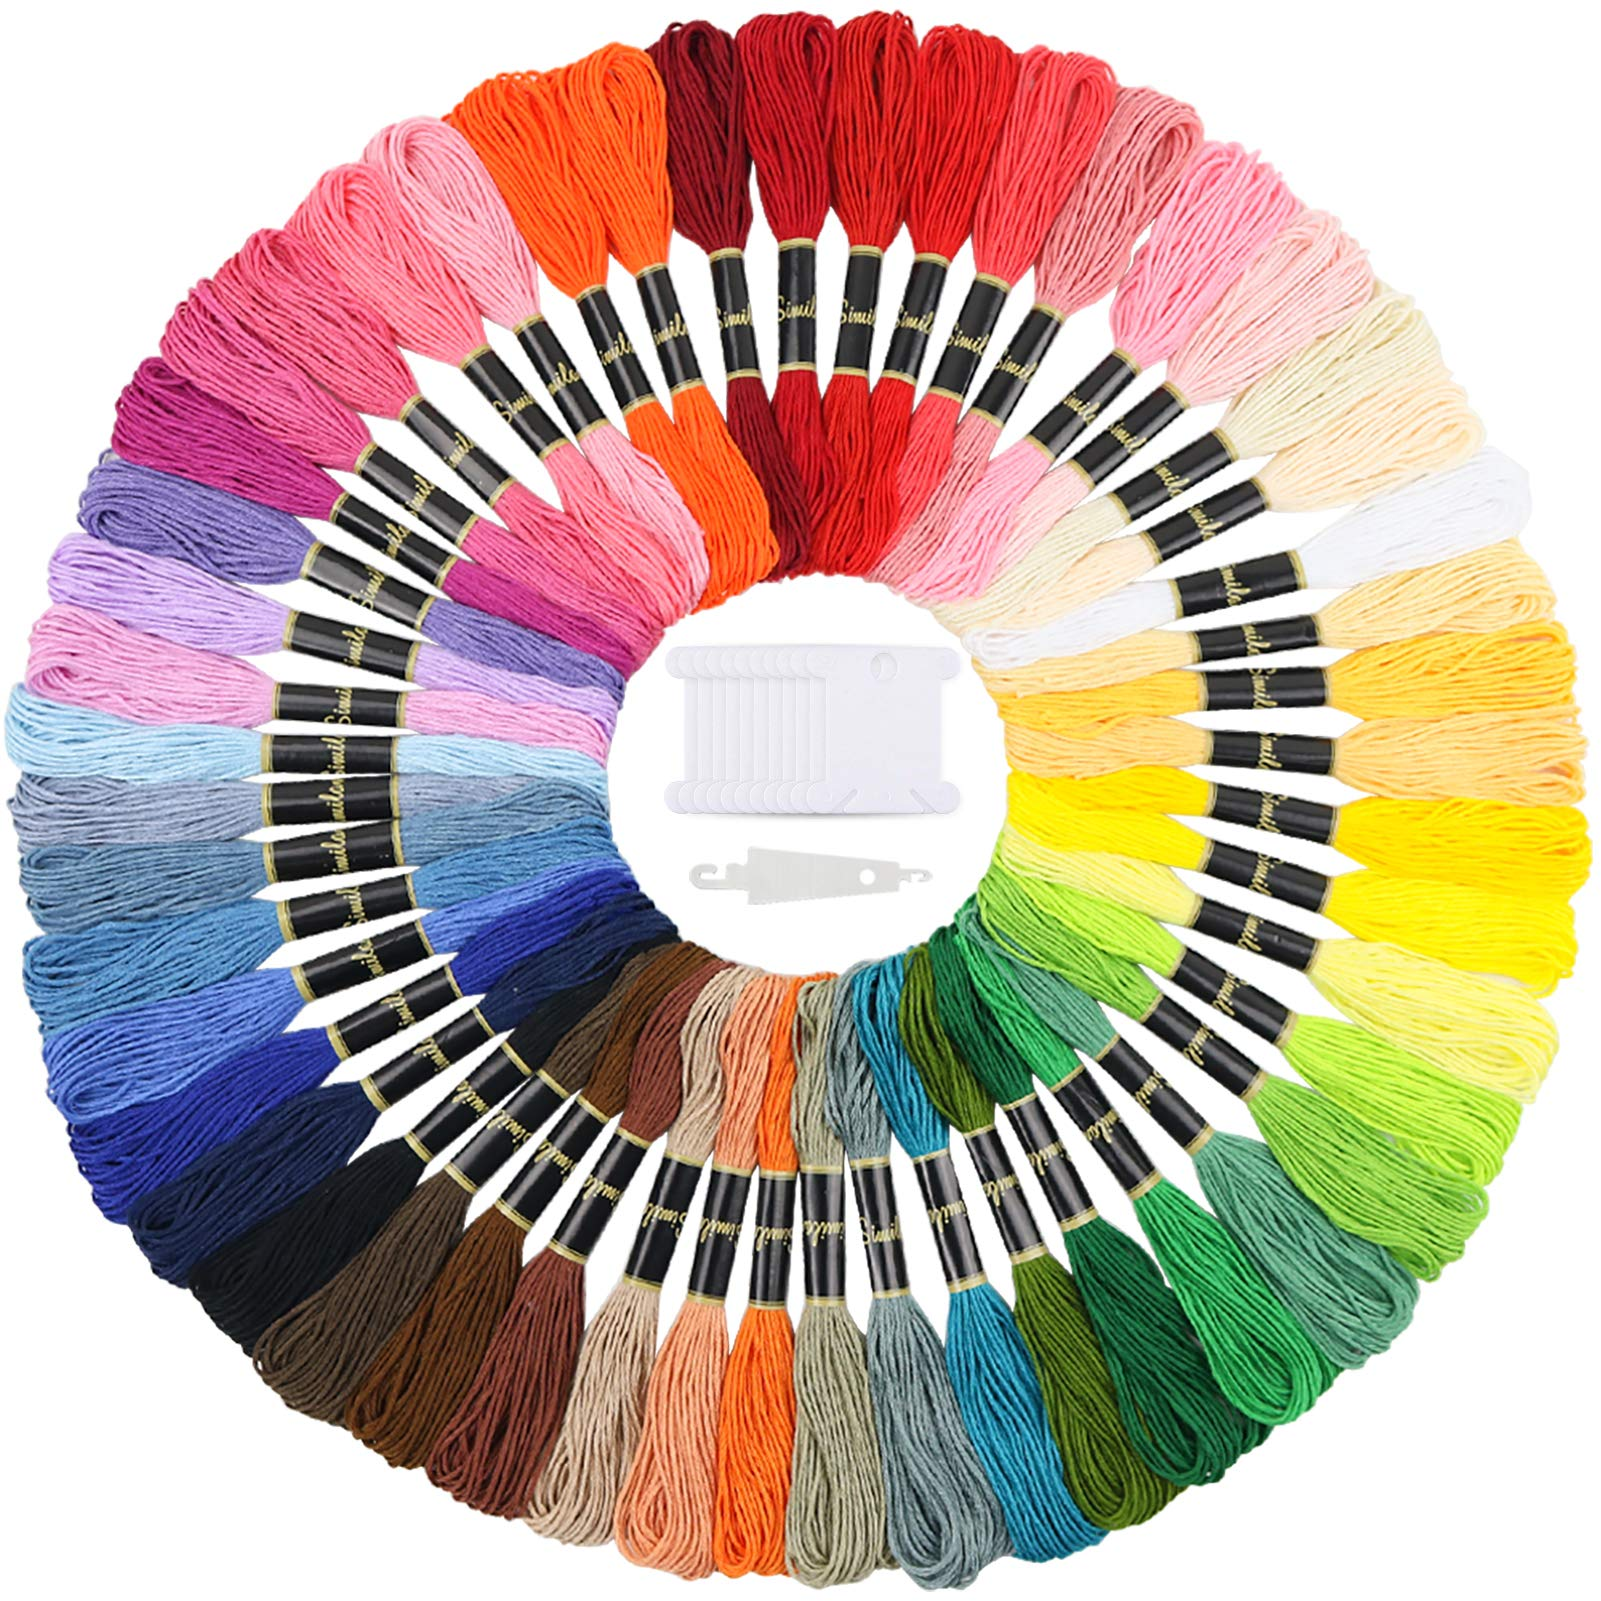 Similane Embroidery Floss 50 Skeins Cross Stitch Thread Rainbow Color Friendship Bracelets Floss Crafts Floss with 12 Pcs Floss Bobbins and 1 Pcs Needle-Threading Tool